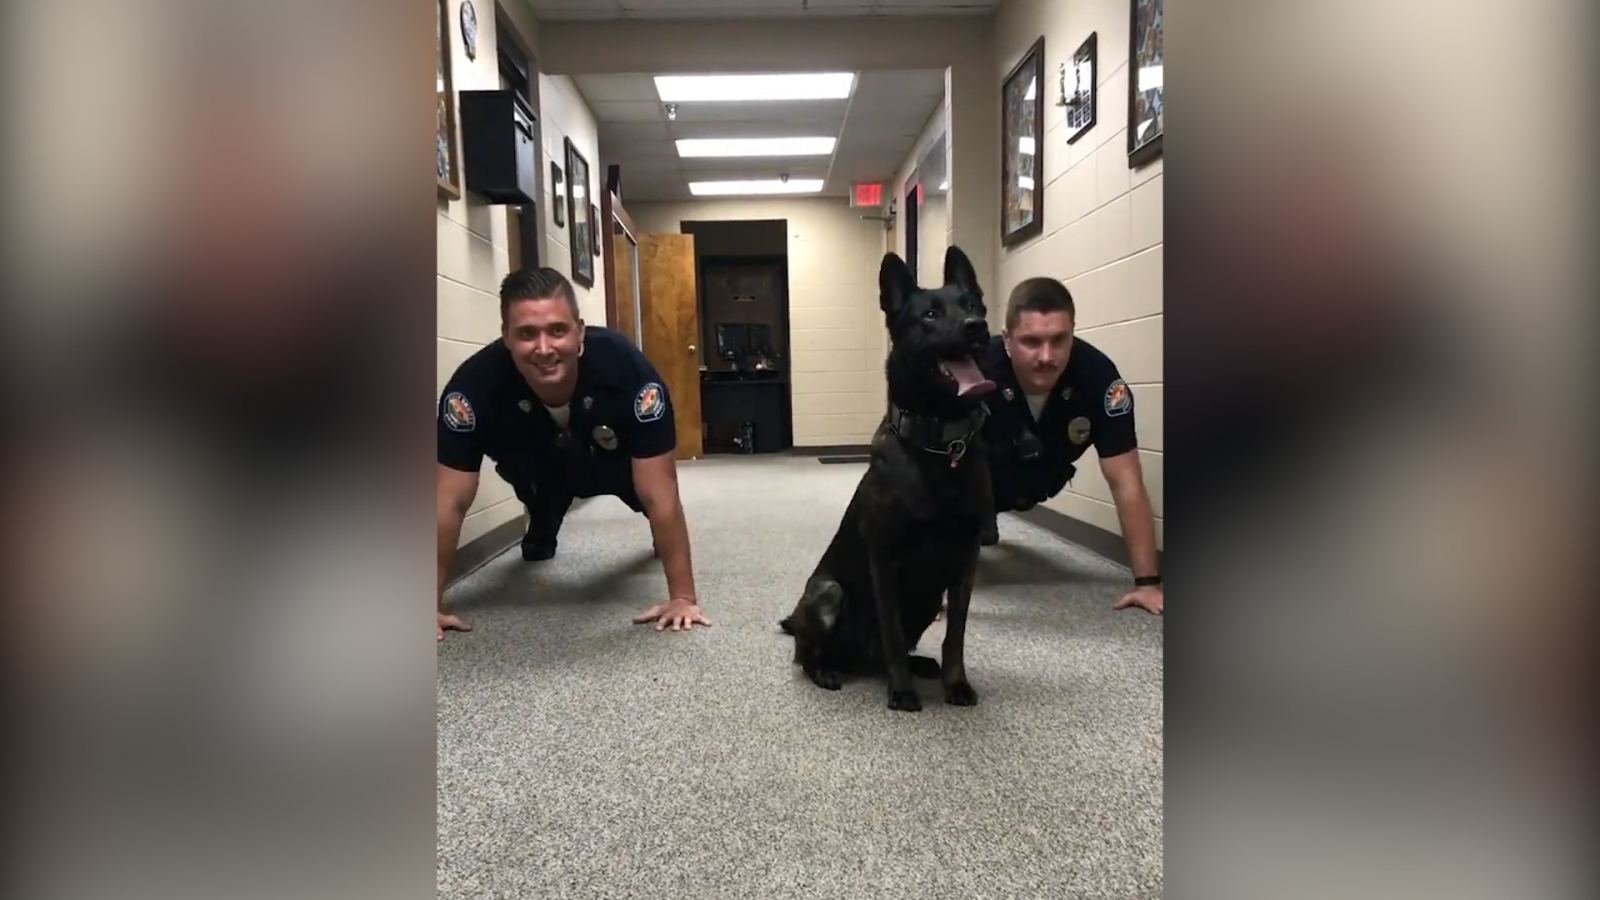 Adorable police dog does push-ups with officers as 'Eye of the Tiger' plays